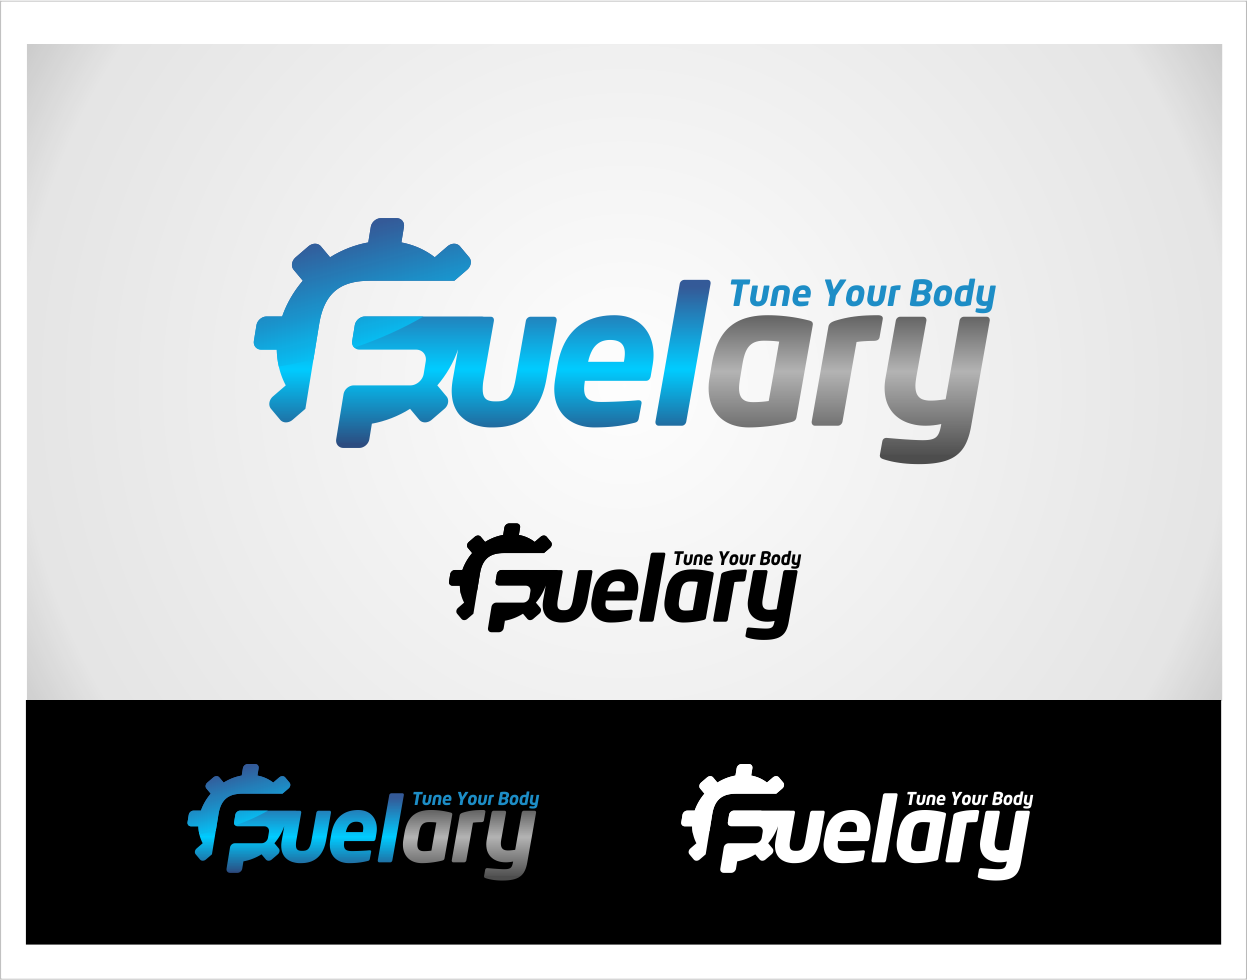 Fuelary LOGO. Help us Franchise! People need pain Relief they can afford. We are Body Mechanics!